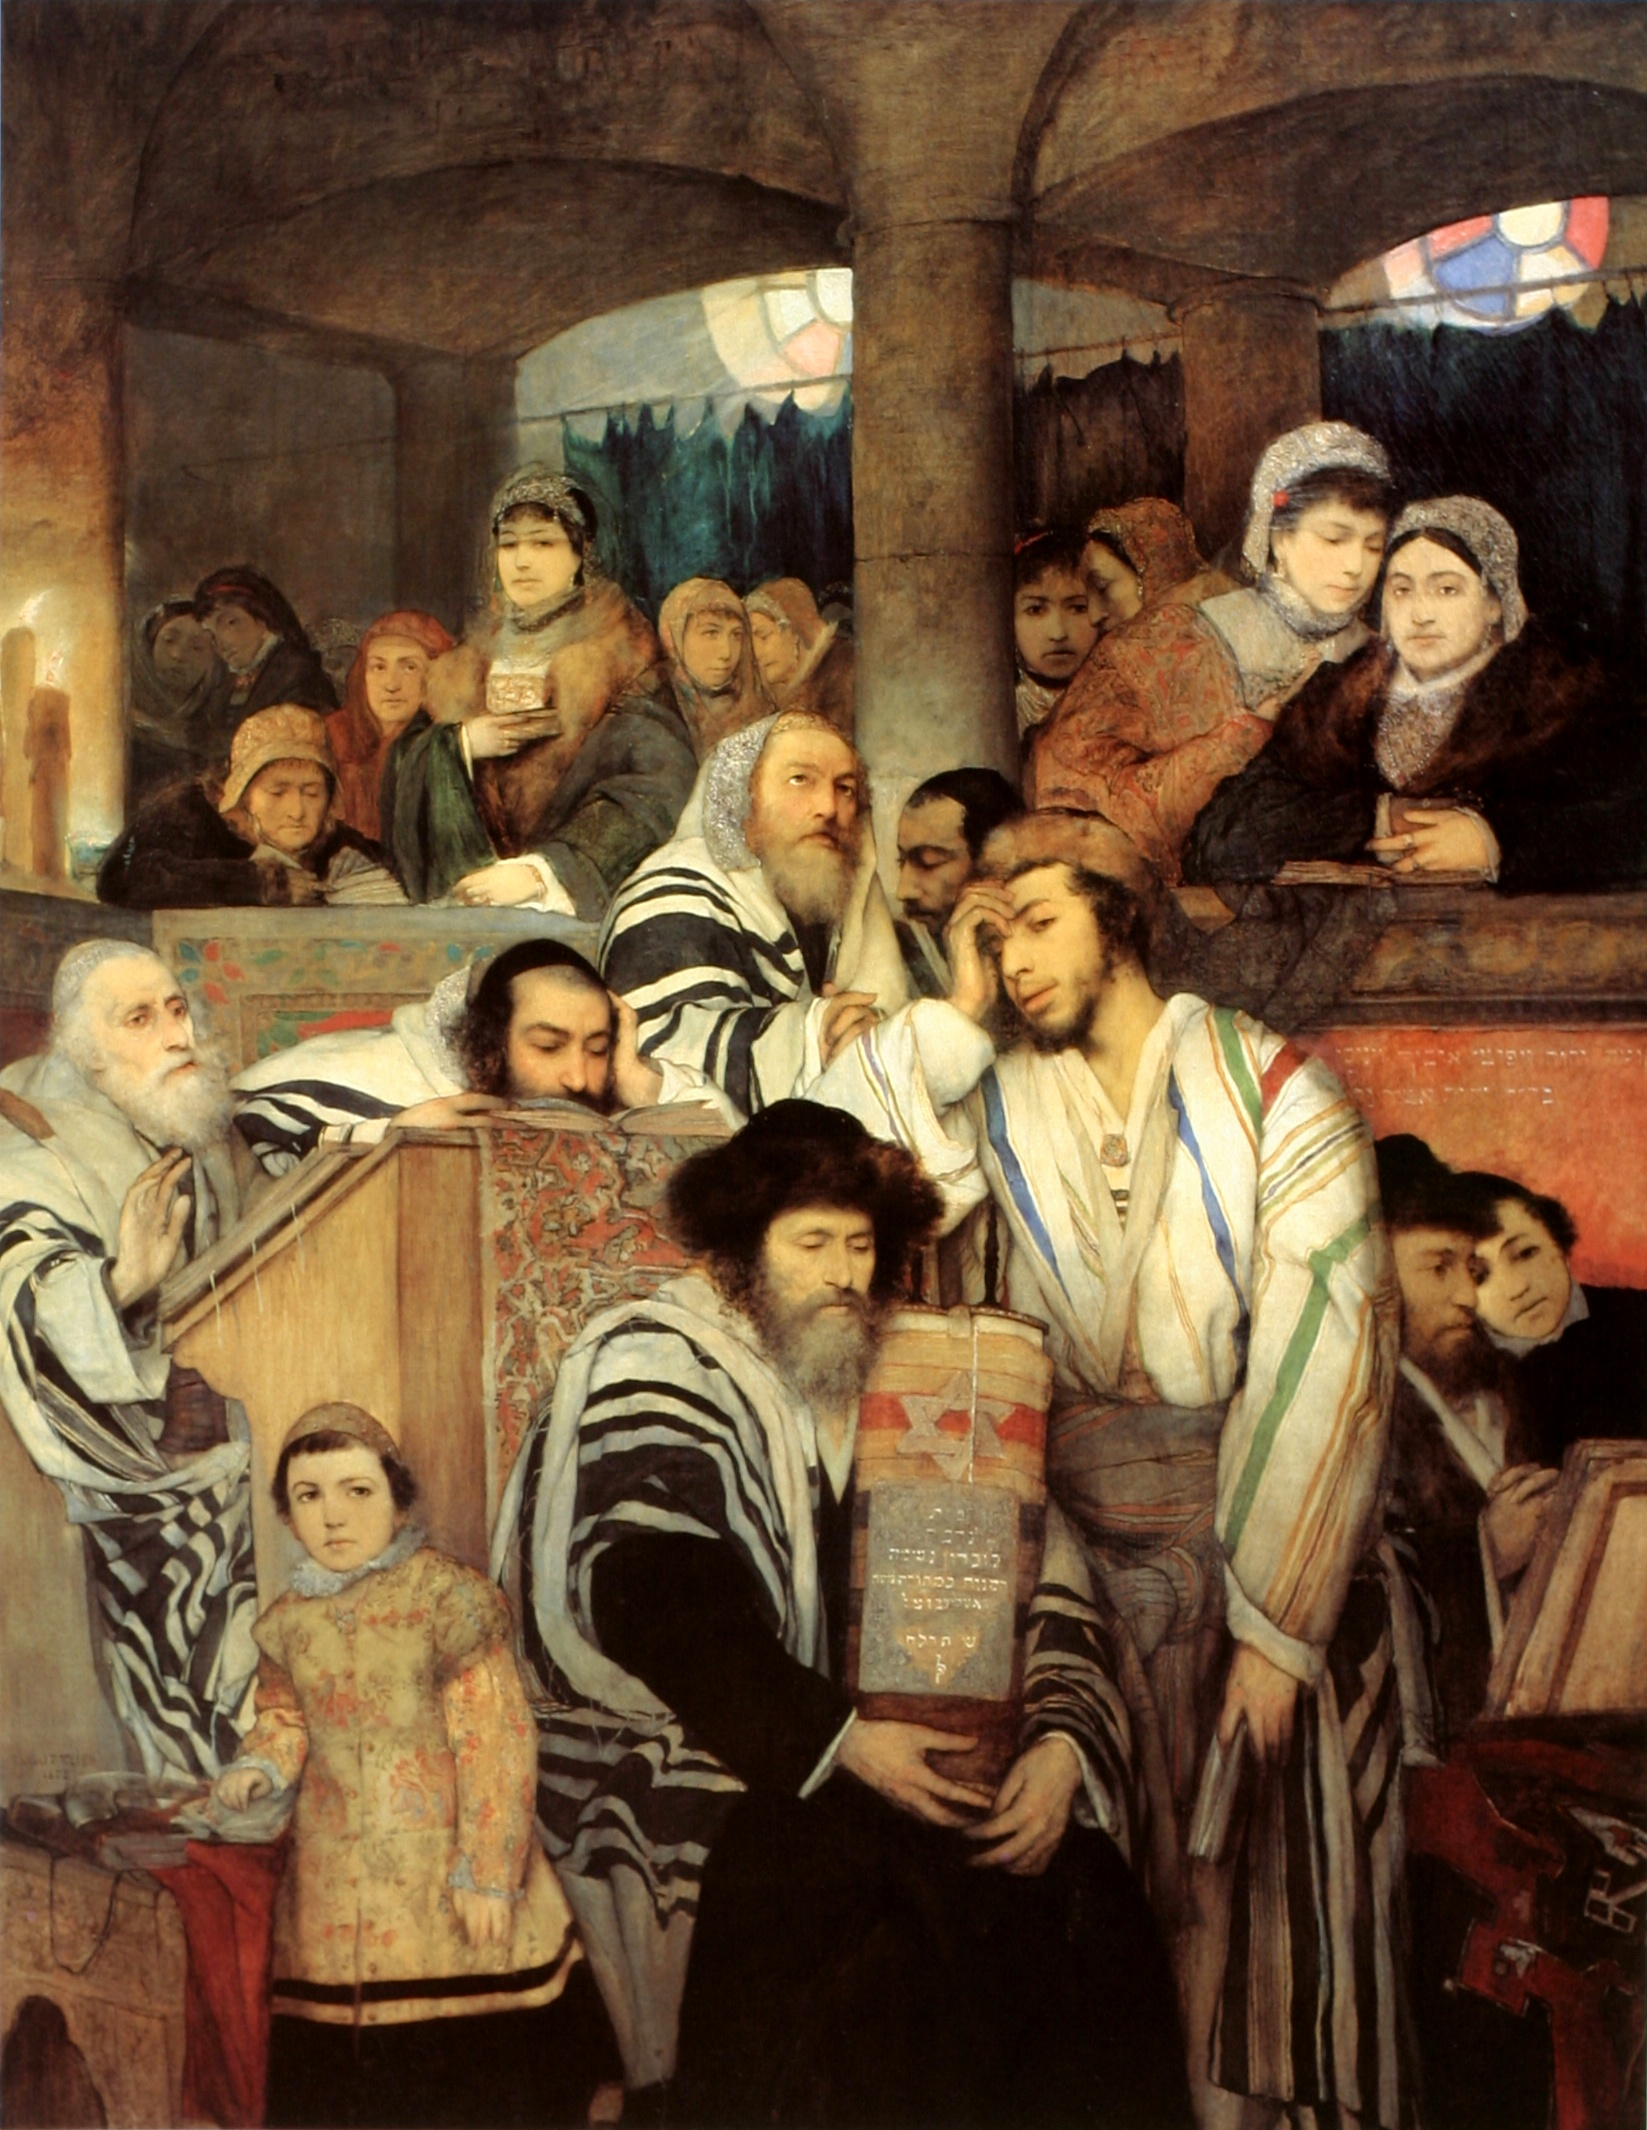 """Jews Praying in Synagogue on Yom Kippur"", by Gottlieb."